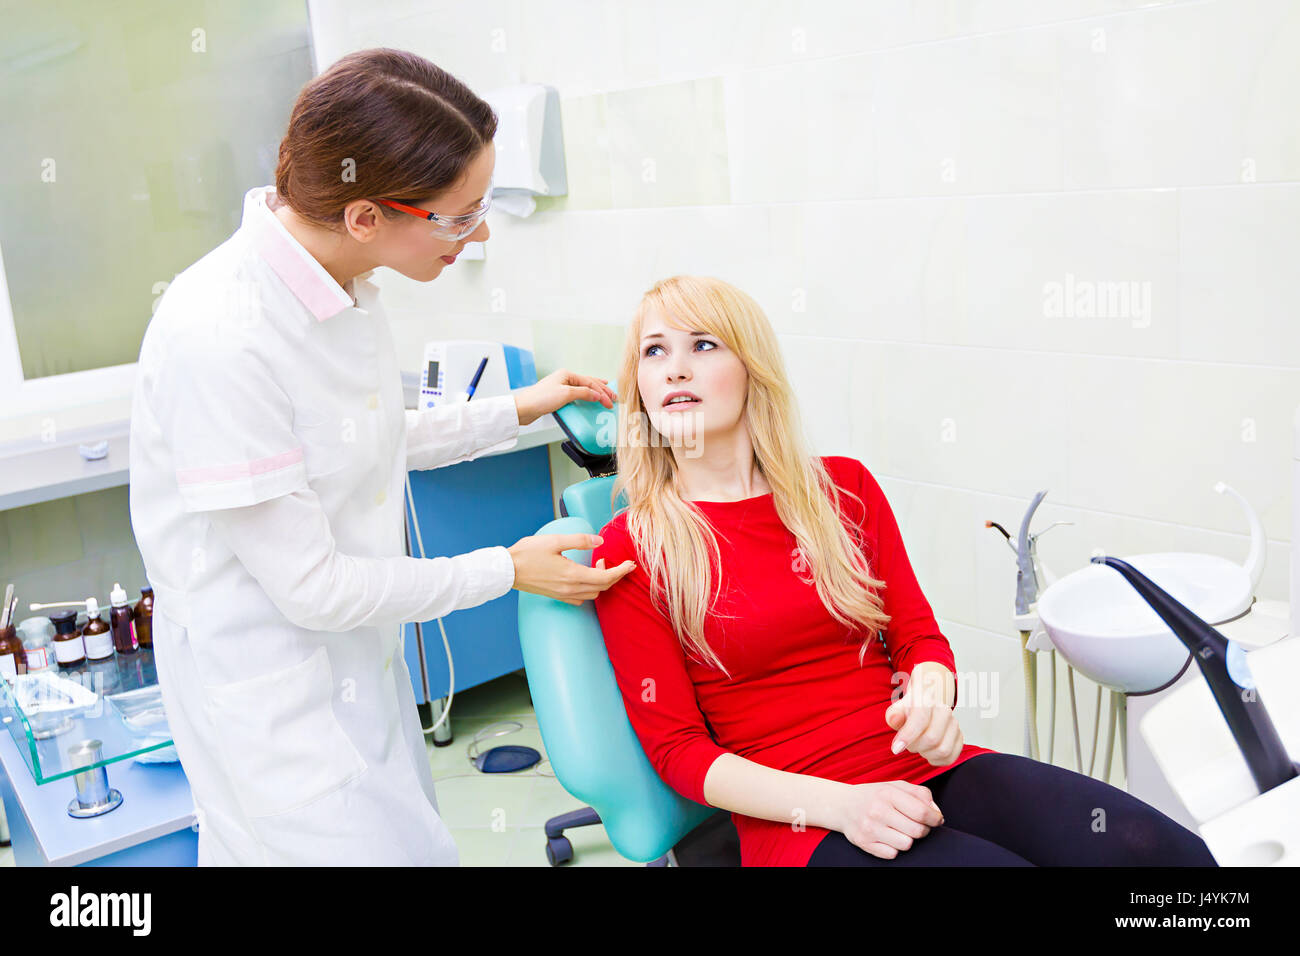 Closeup portrait sad girl, patient woman with painful tooth, ache siting in chair, medical office explaining her - Stock Image